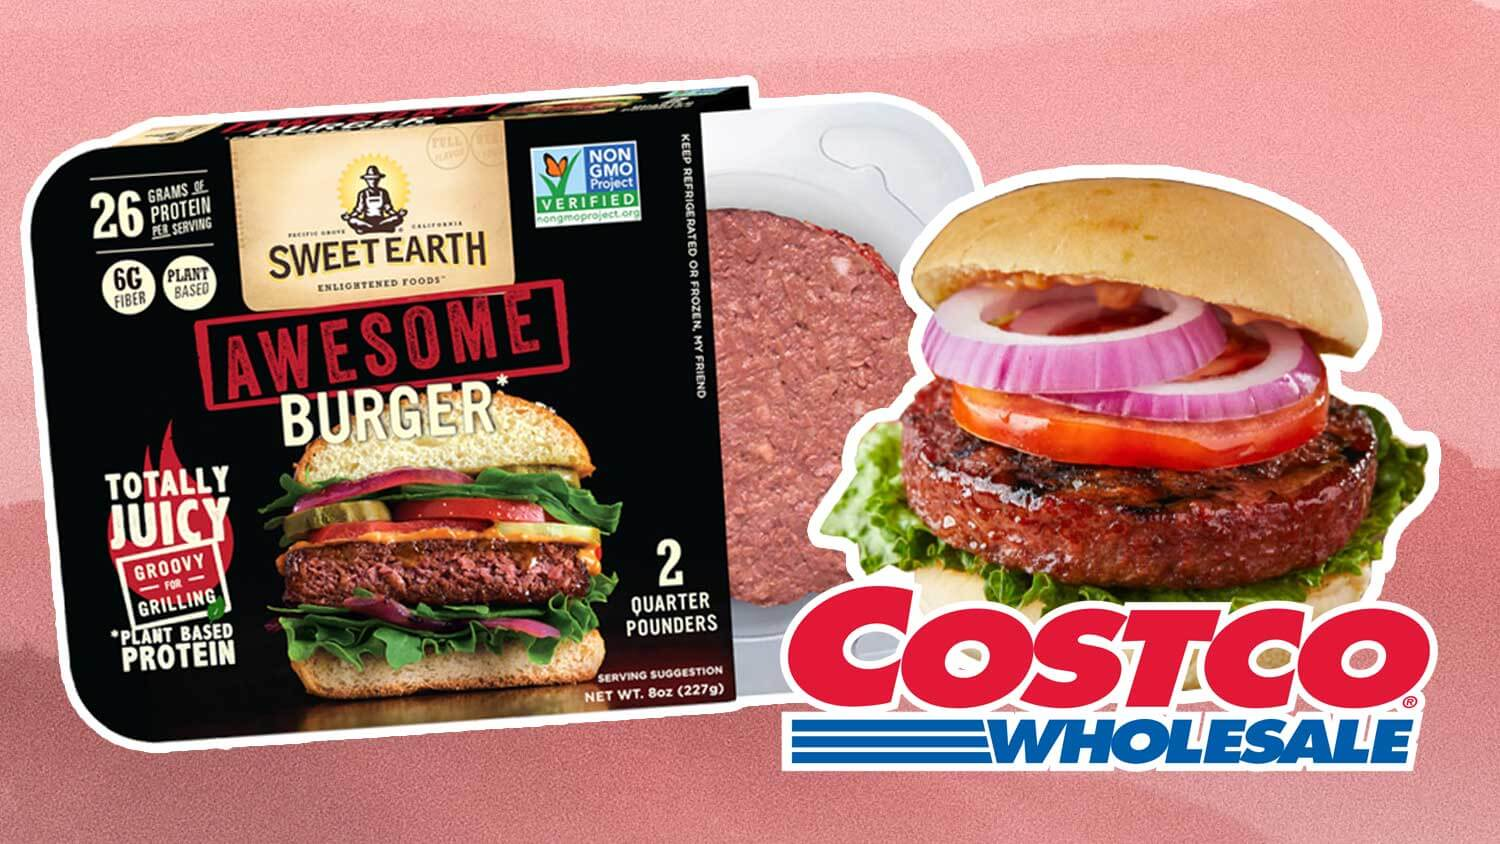 Nestlé's Vegan 'Awesome' Burger Just Launched At Costco